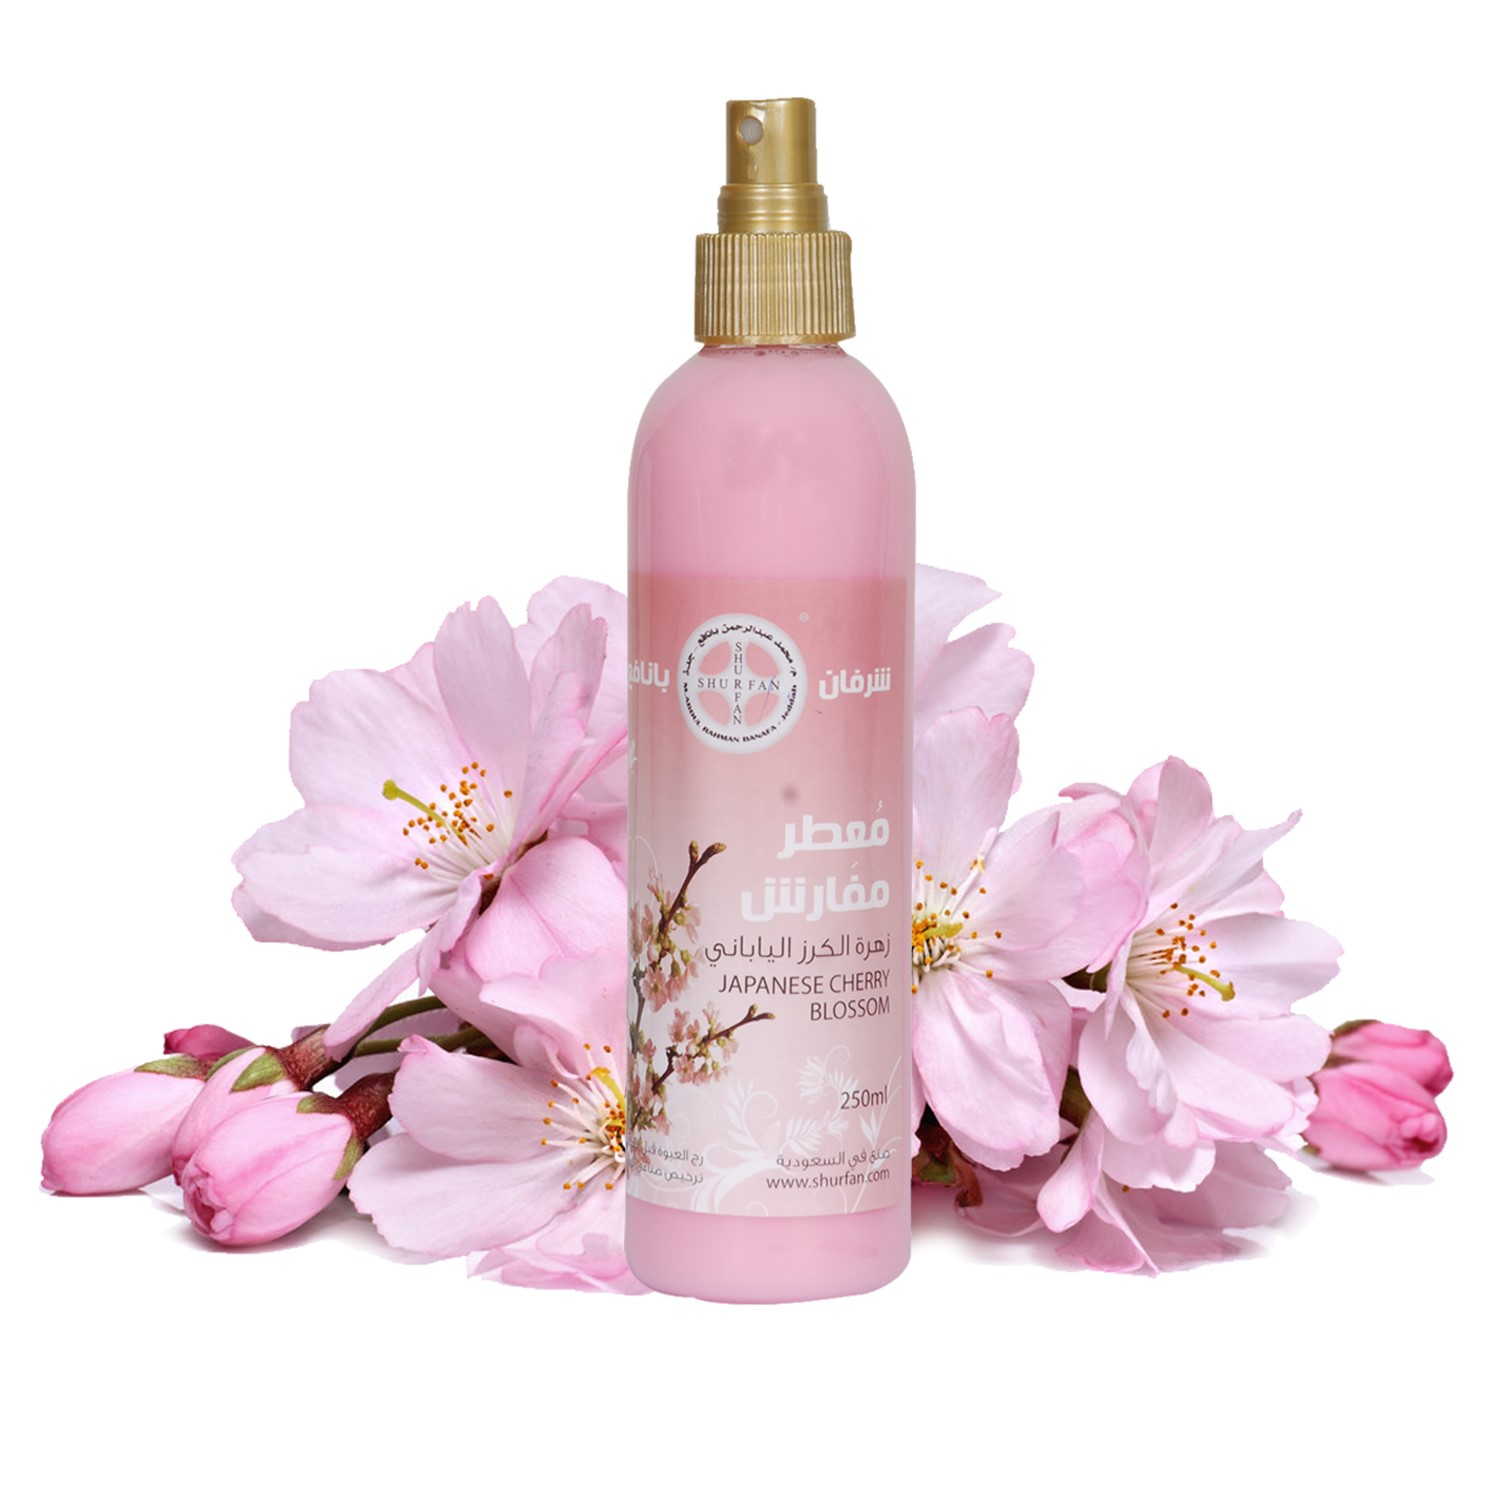 Furniture spray - Japanese Cherry Blossom Image